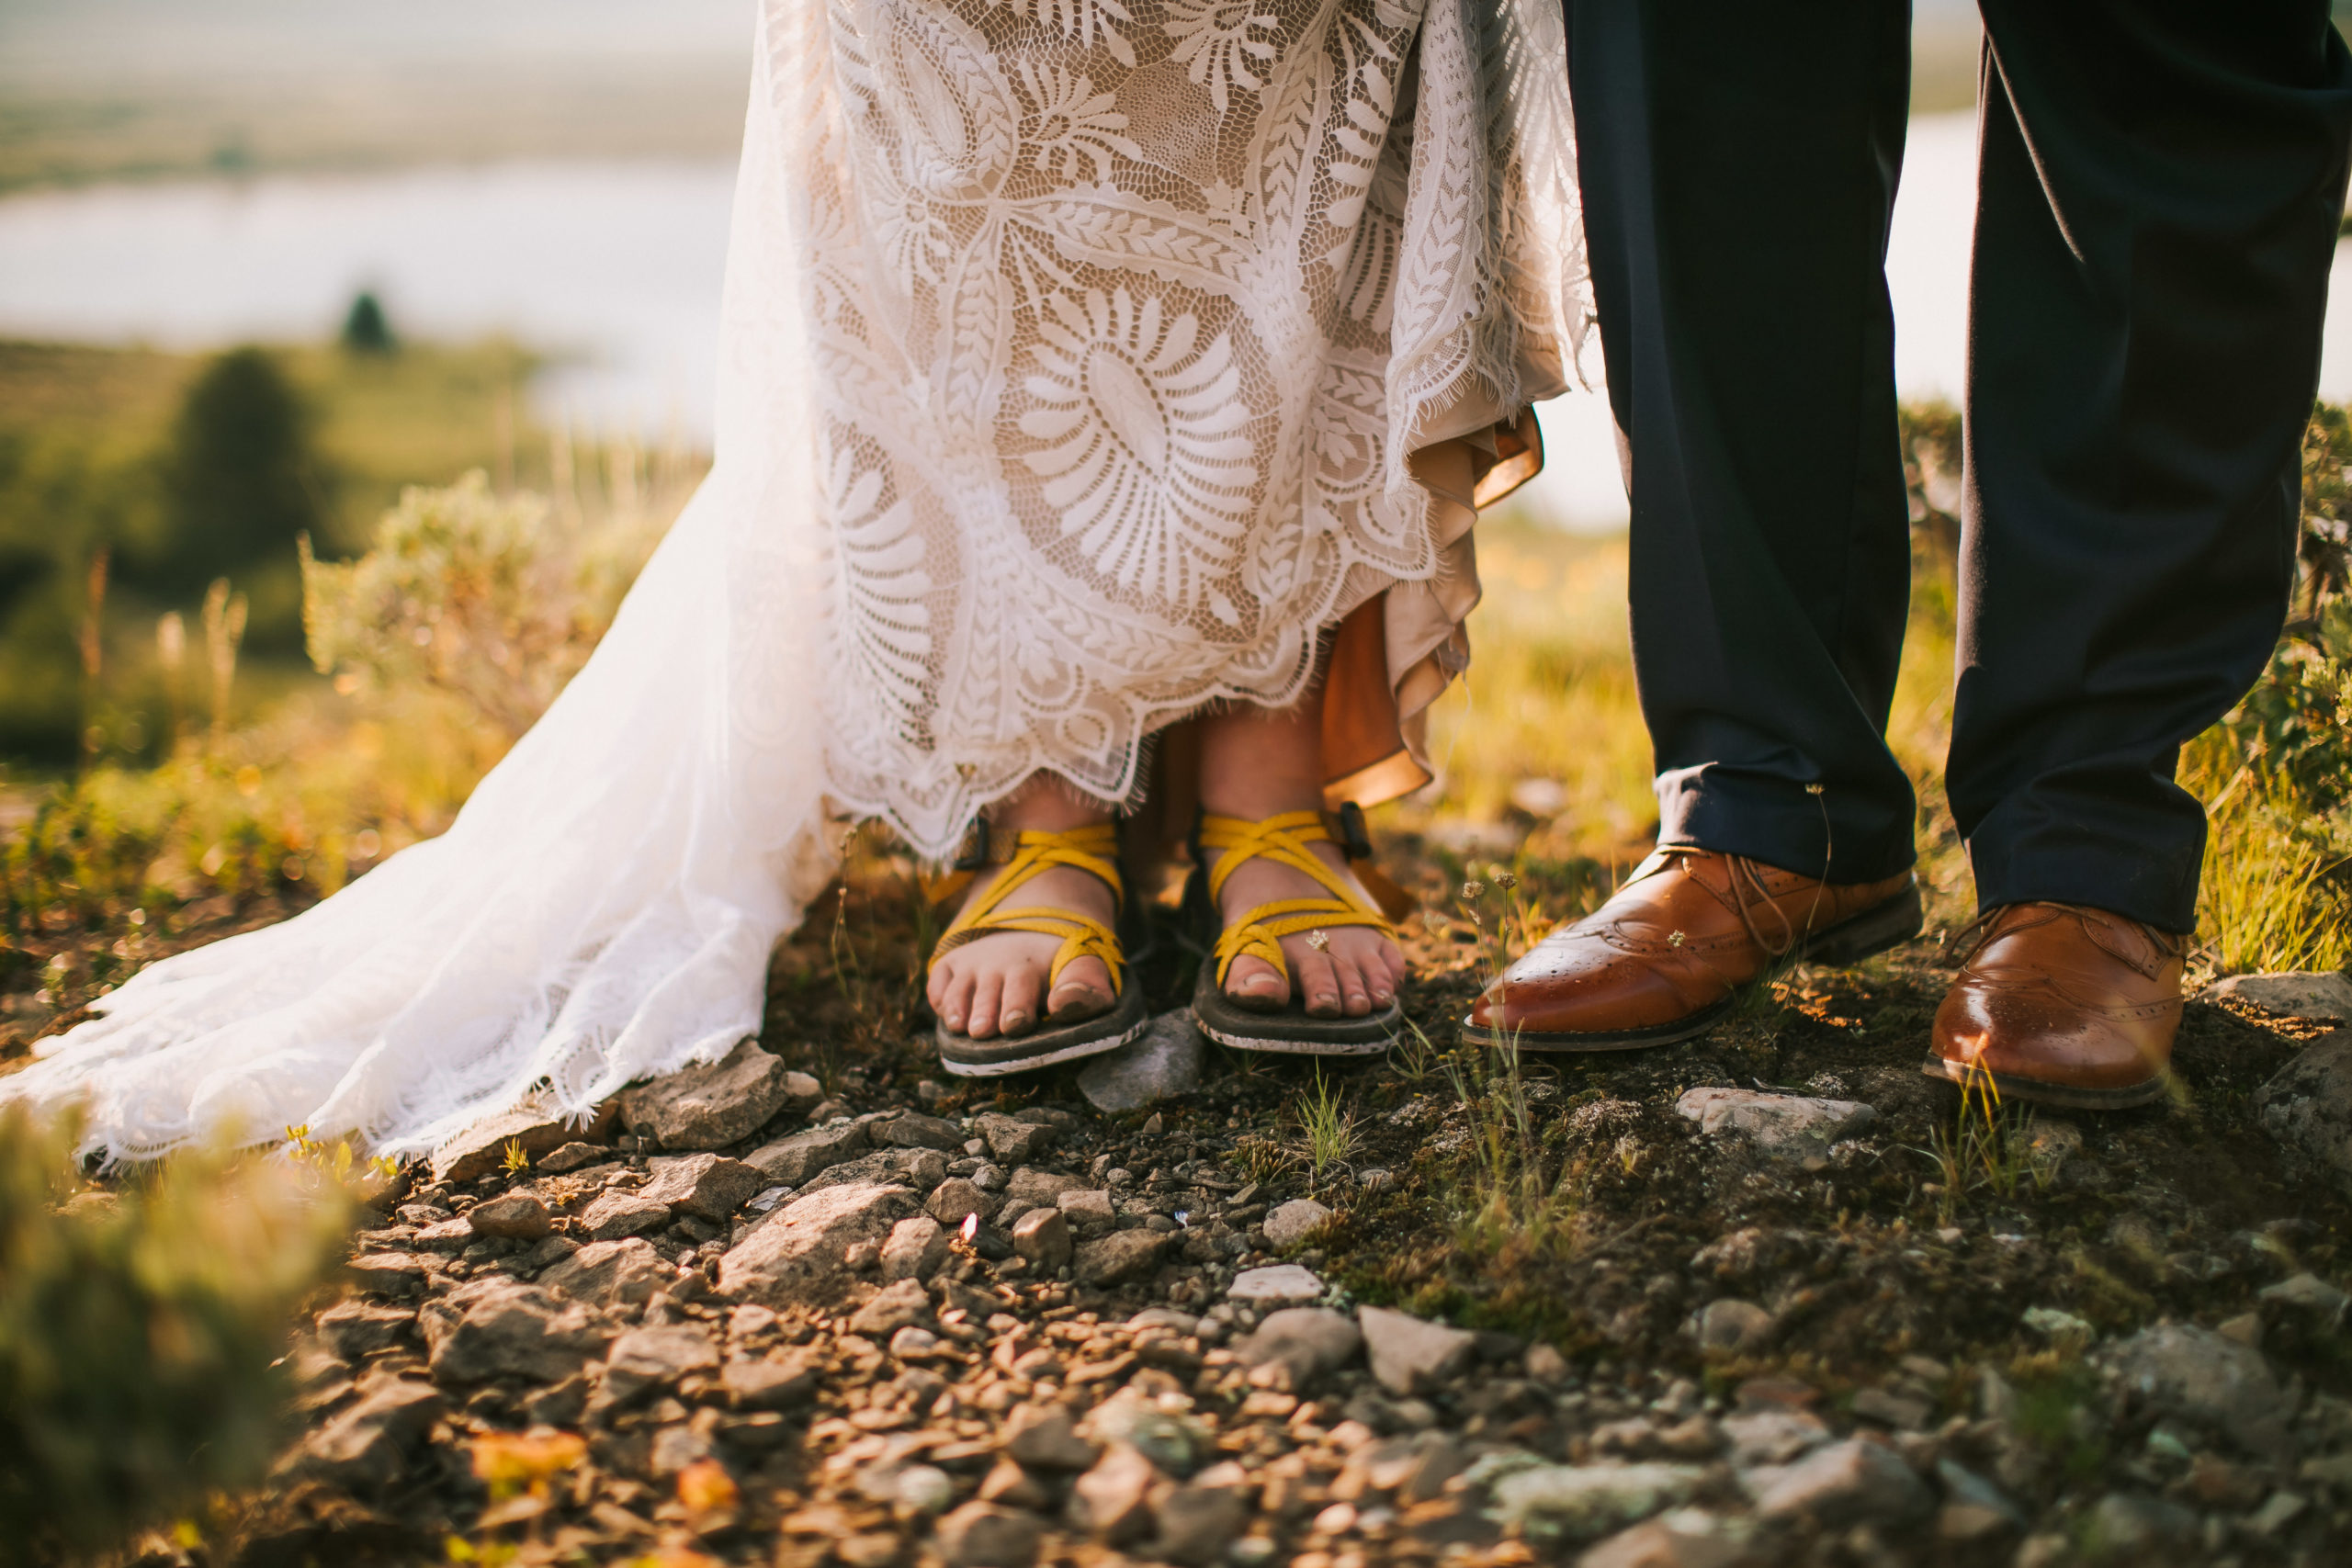 A woman wears Chacos hiking sandals under her wedding dress